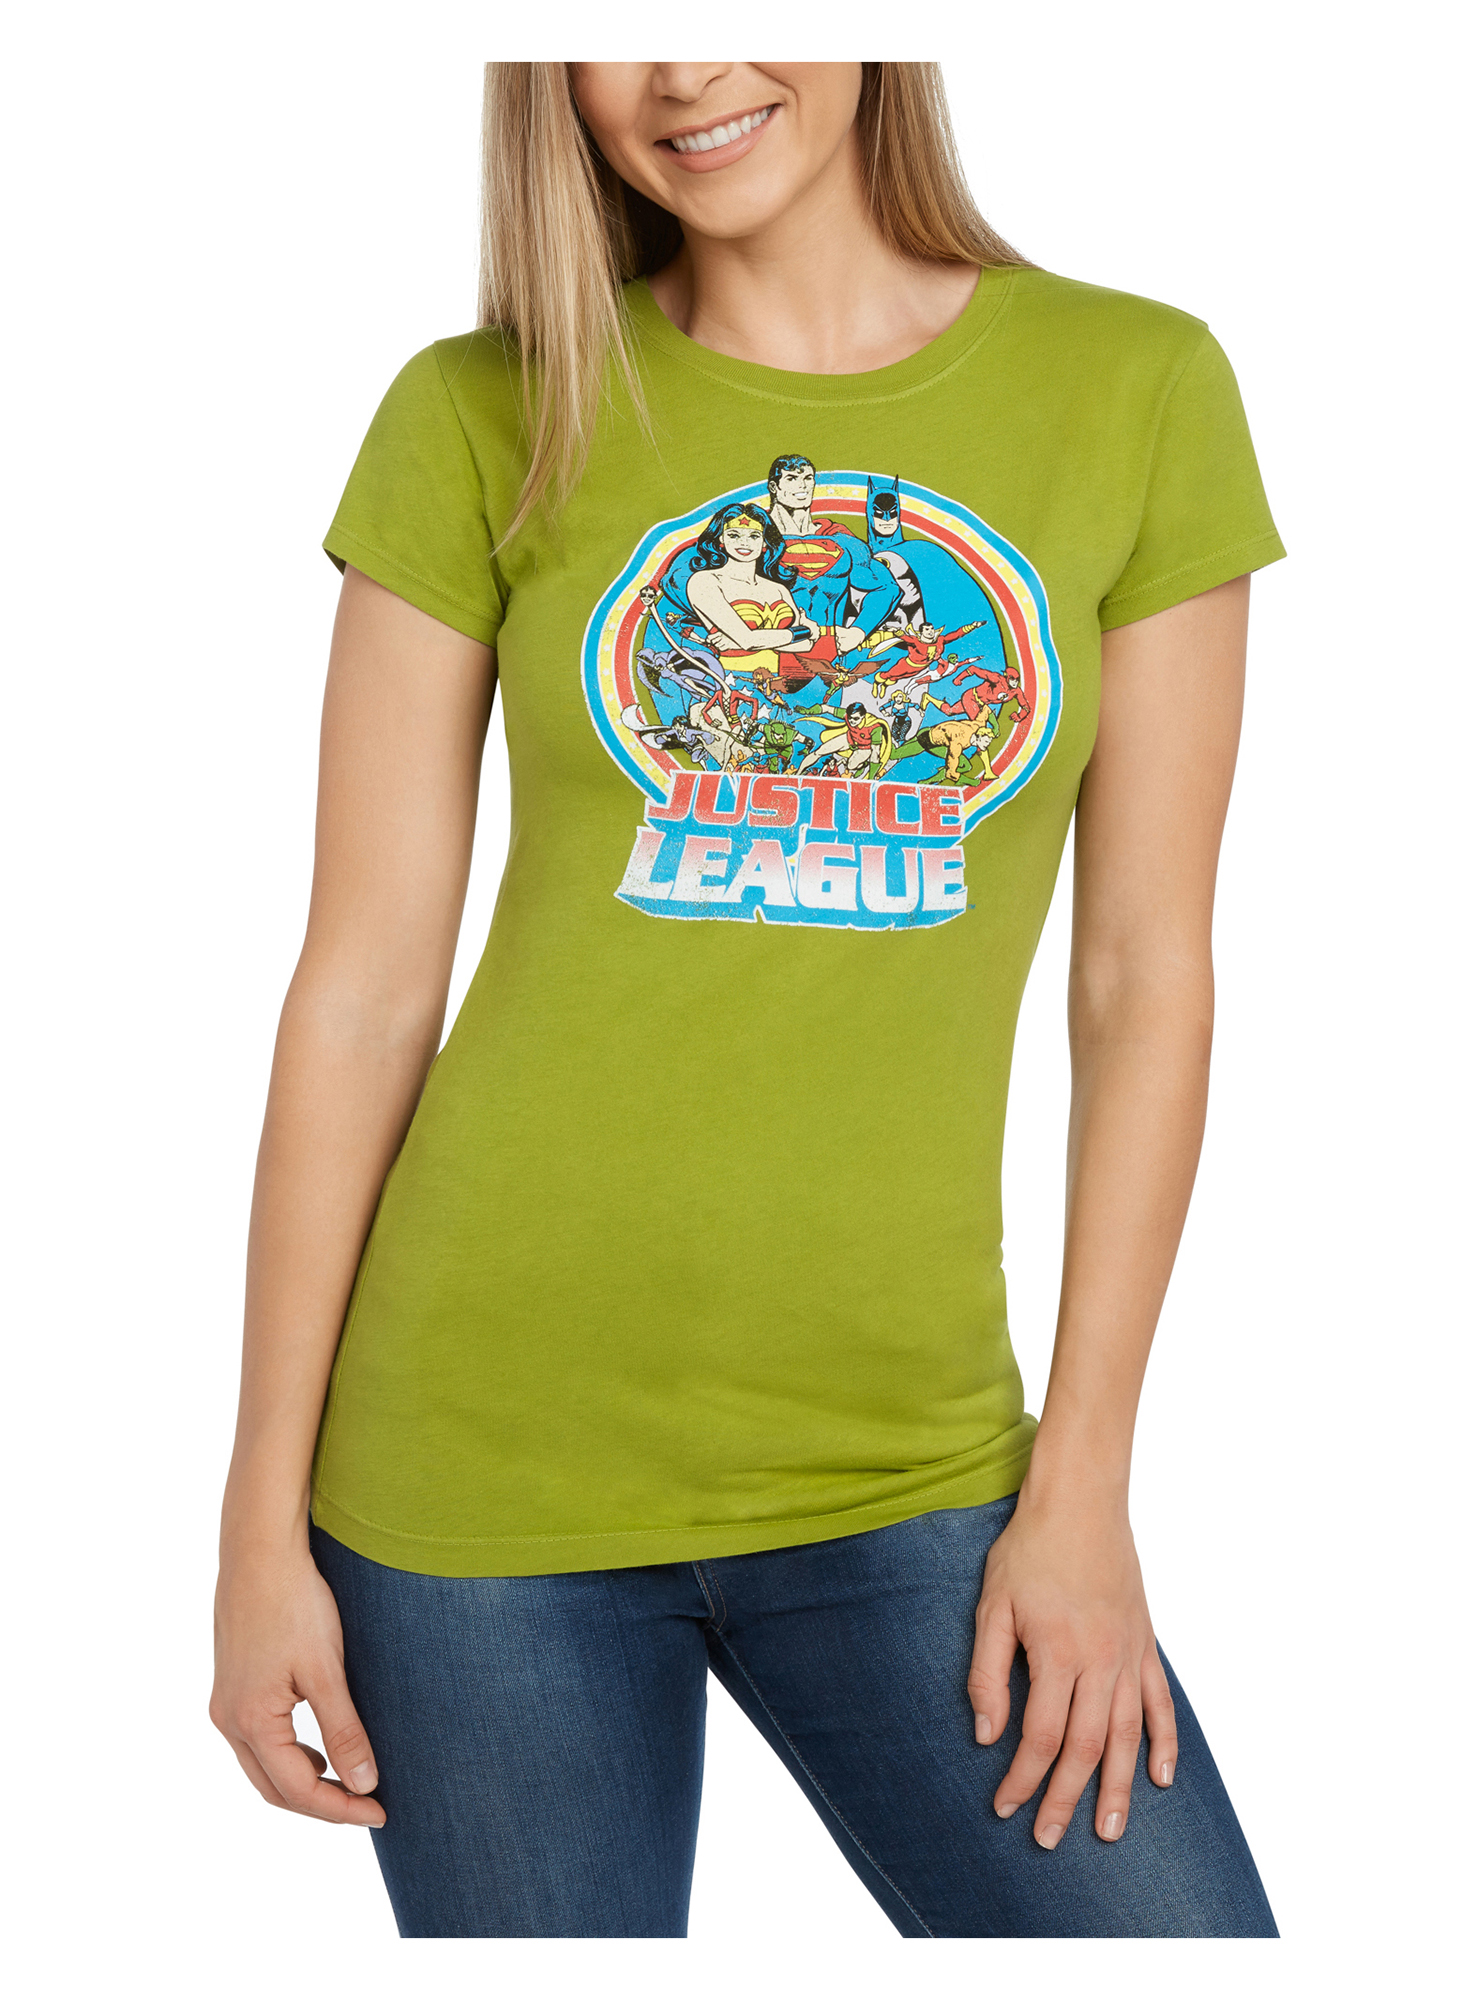 Juniors Justice League Graphic T-Shirt Green